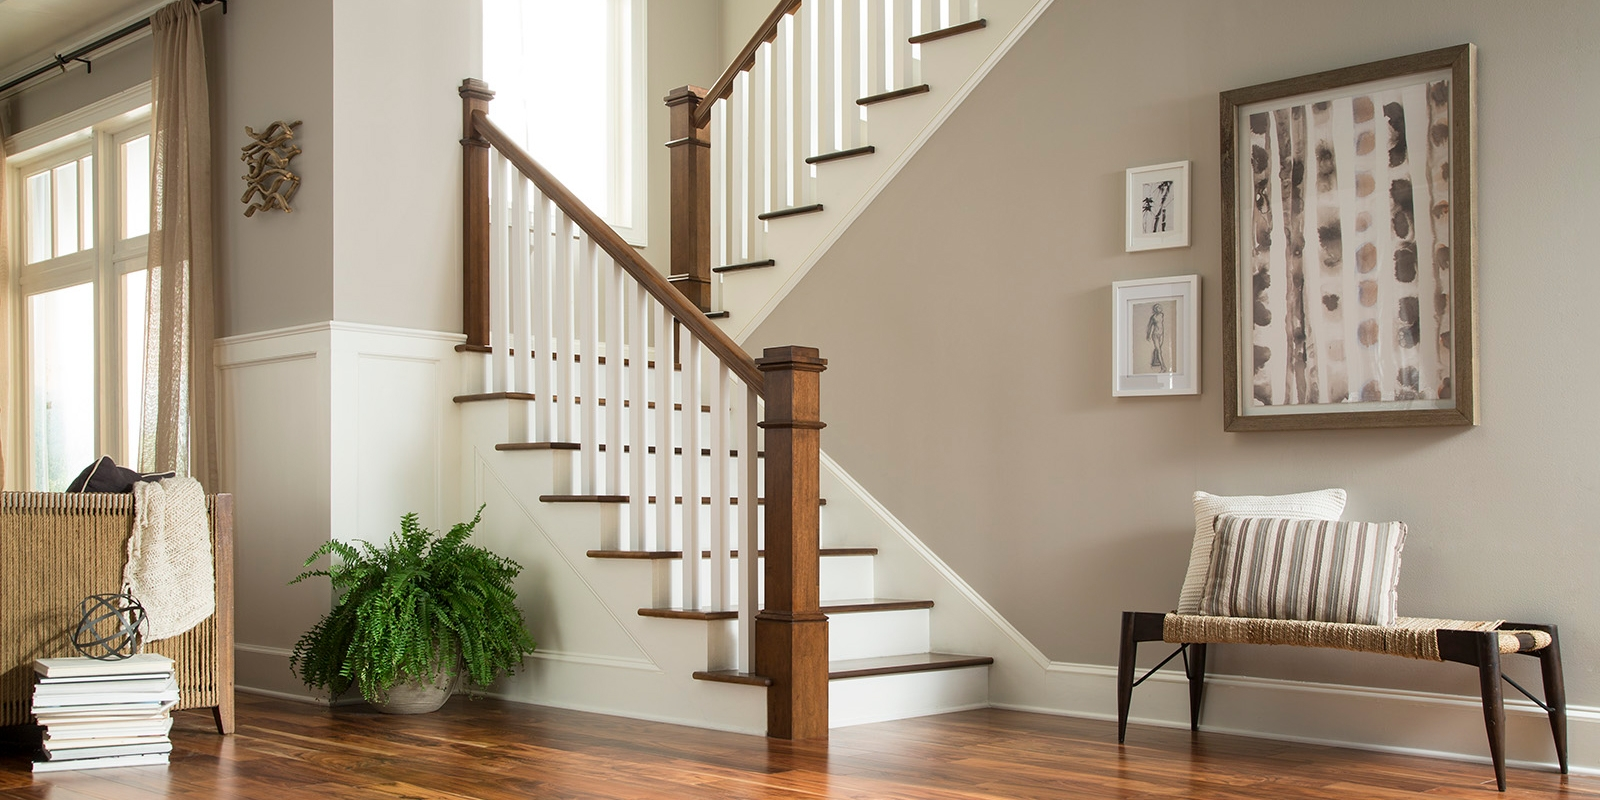 Stairs Stair Parts Attic Stairs Tague Lumber | Buy Handrails For Stairs | Stair Systems | Wrought Iron Balusters | Wood | Stair Treads | Lj Smith